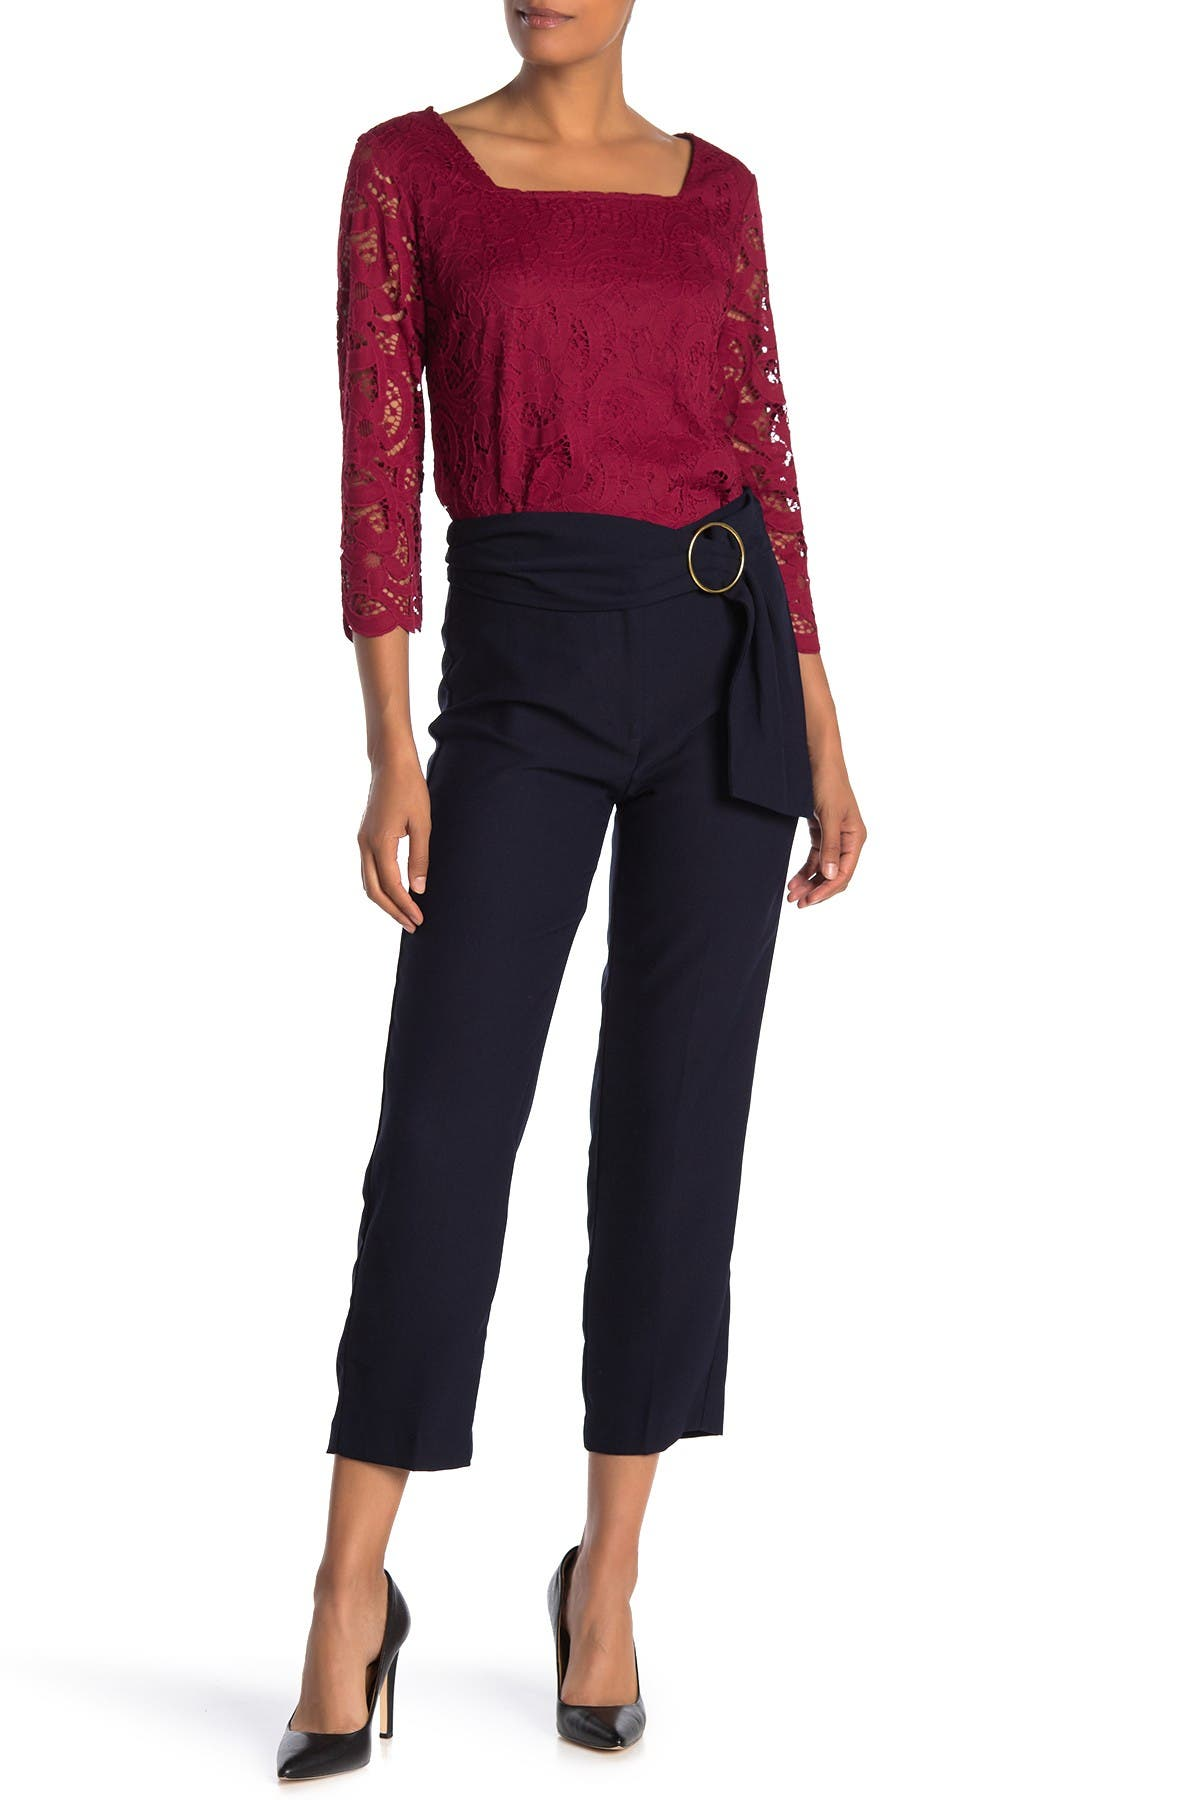 Image of NANETTE nanette lepore O-Ring Ankle Cropped Trousers